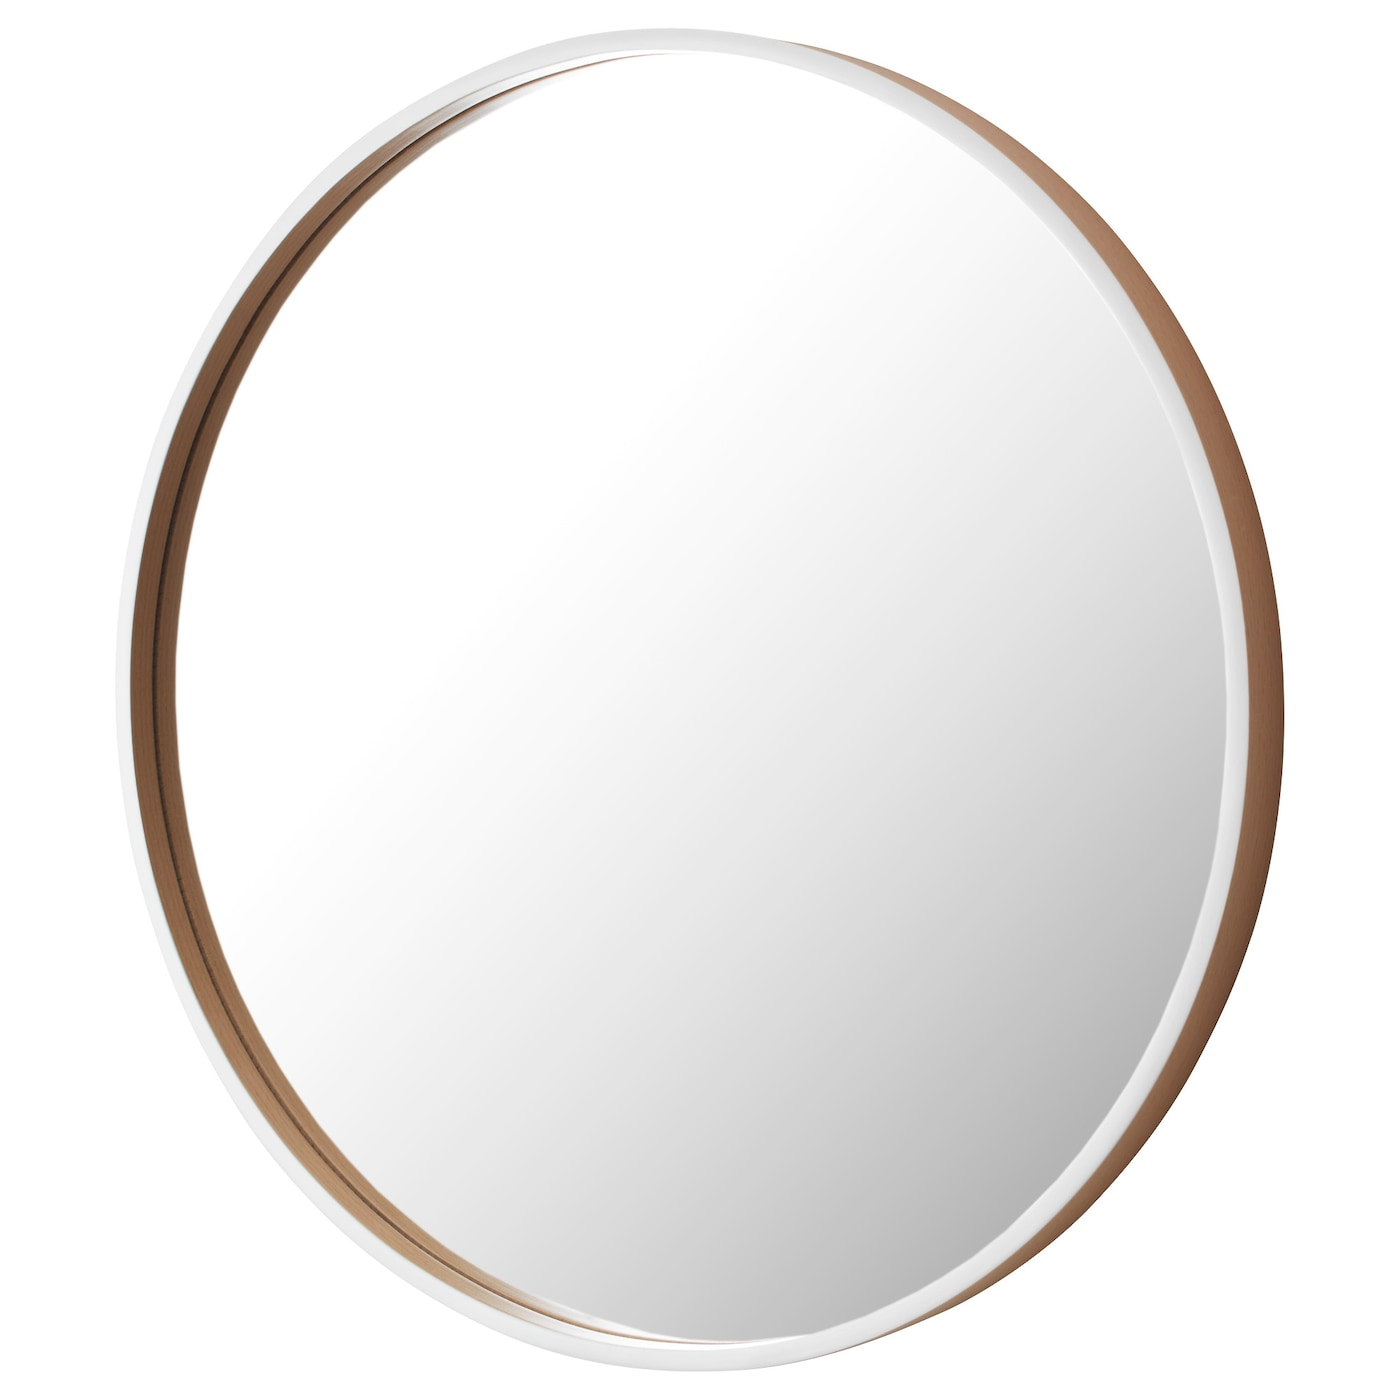 Skogsv g mirror white beech veneer 50 cm ikea for Mirror 50 x 70